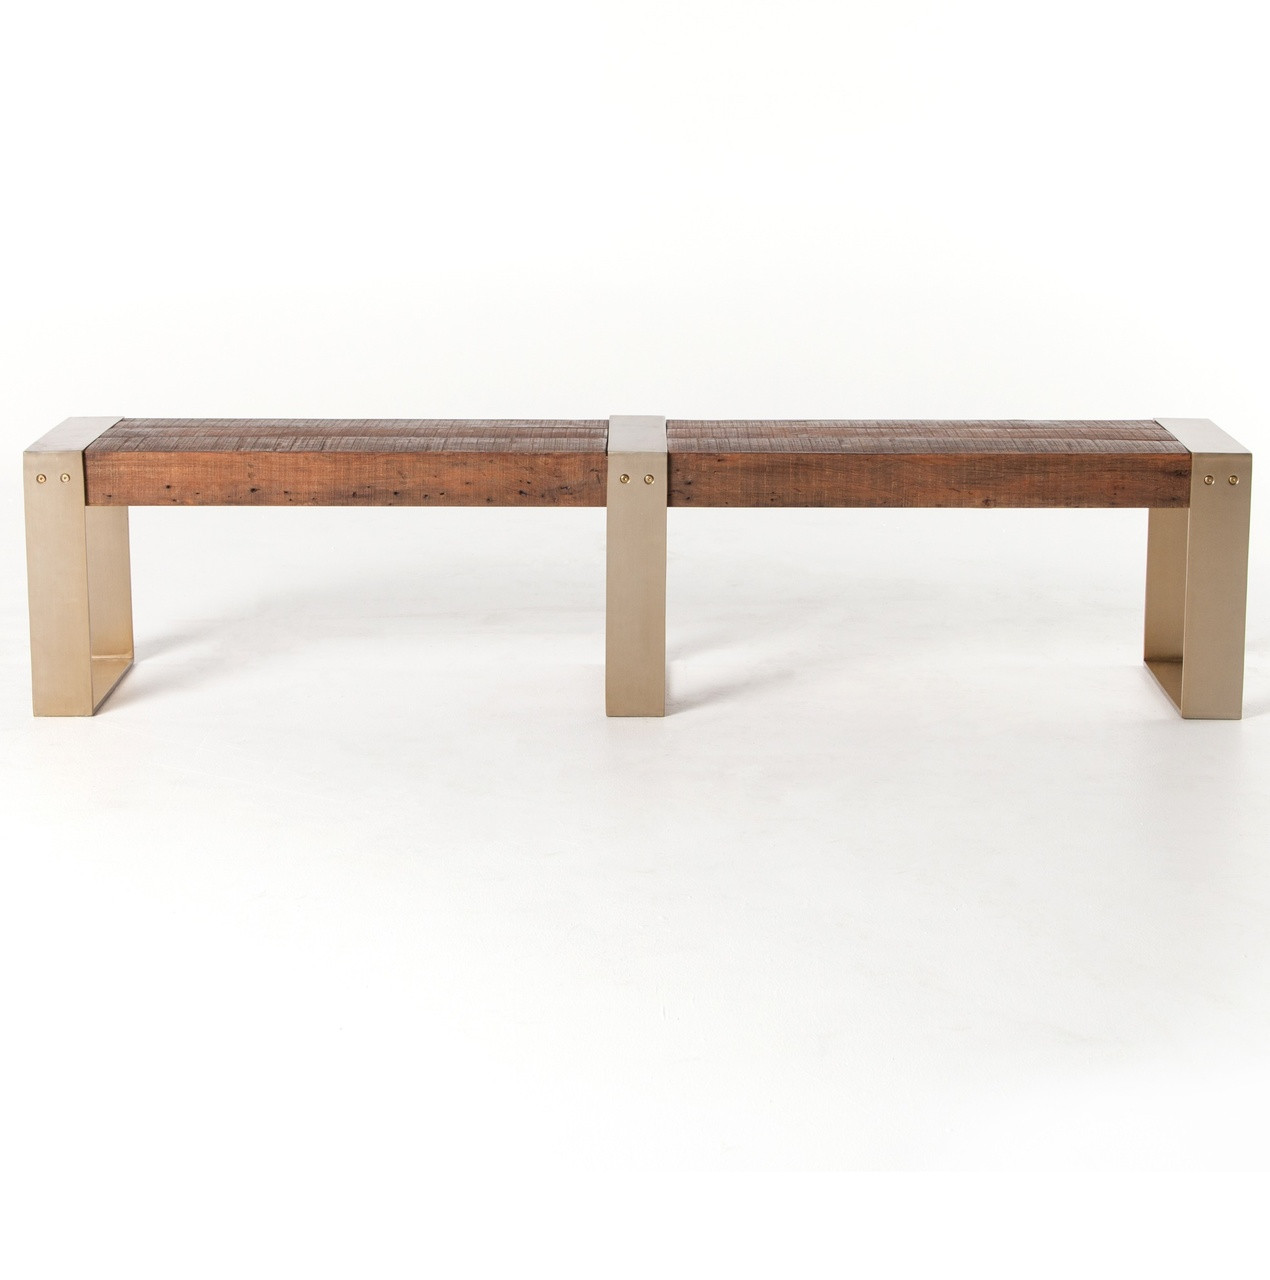 ... Reece Reclaimed Wood Dining Bench with Brass Legs ... - Reece Reclaimed Wood Dining Bench With Brass Legs Zin Home